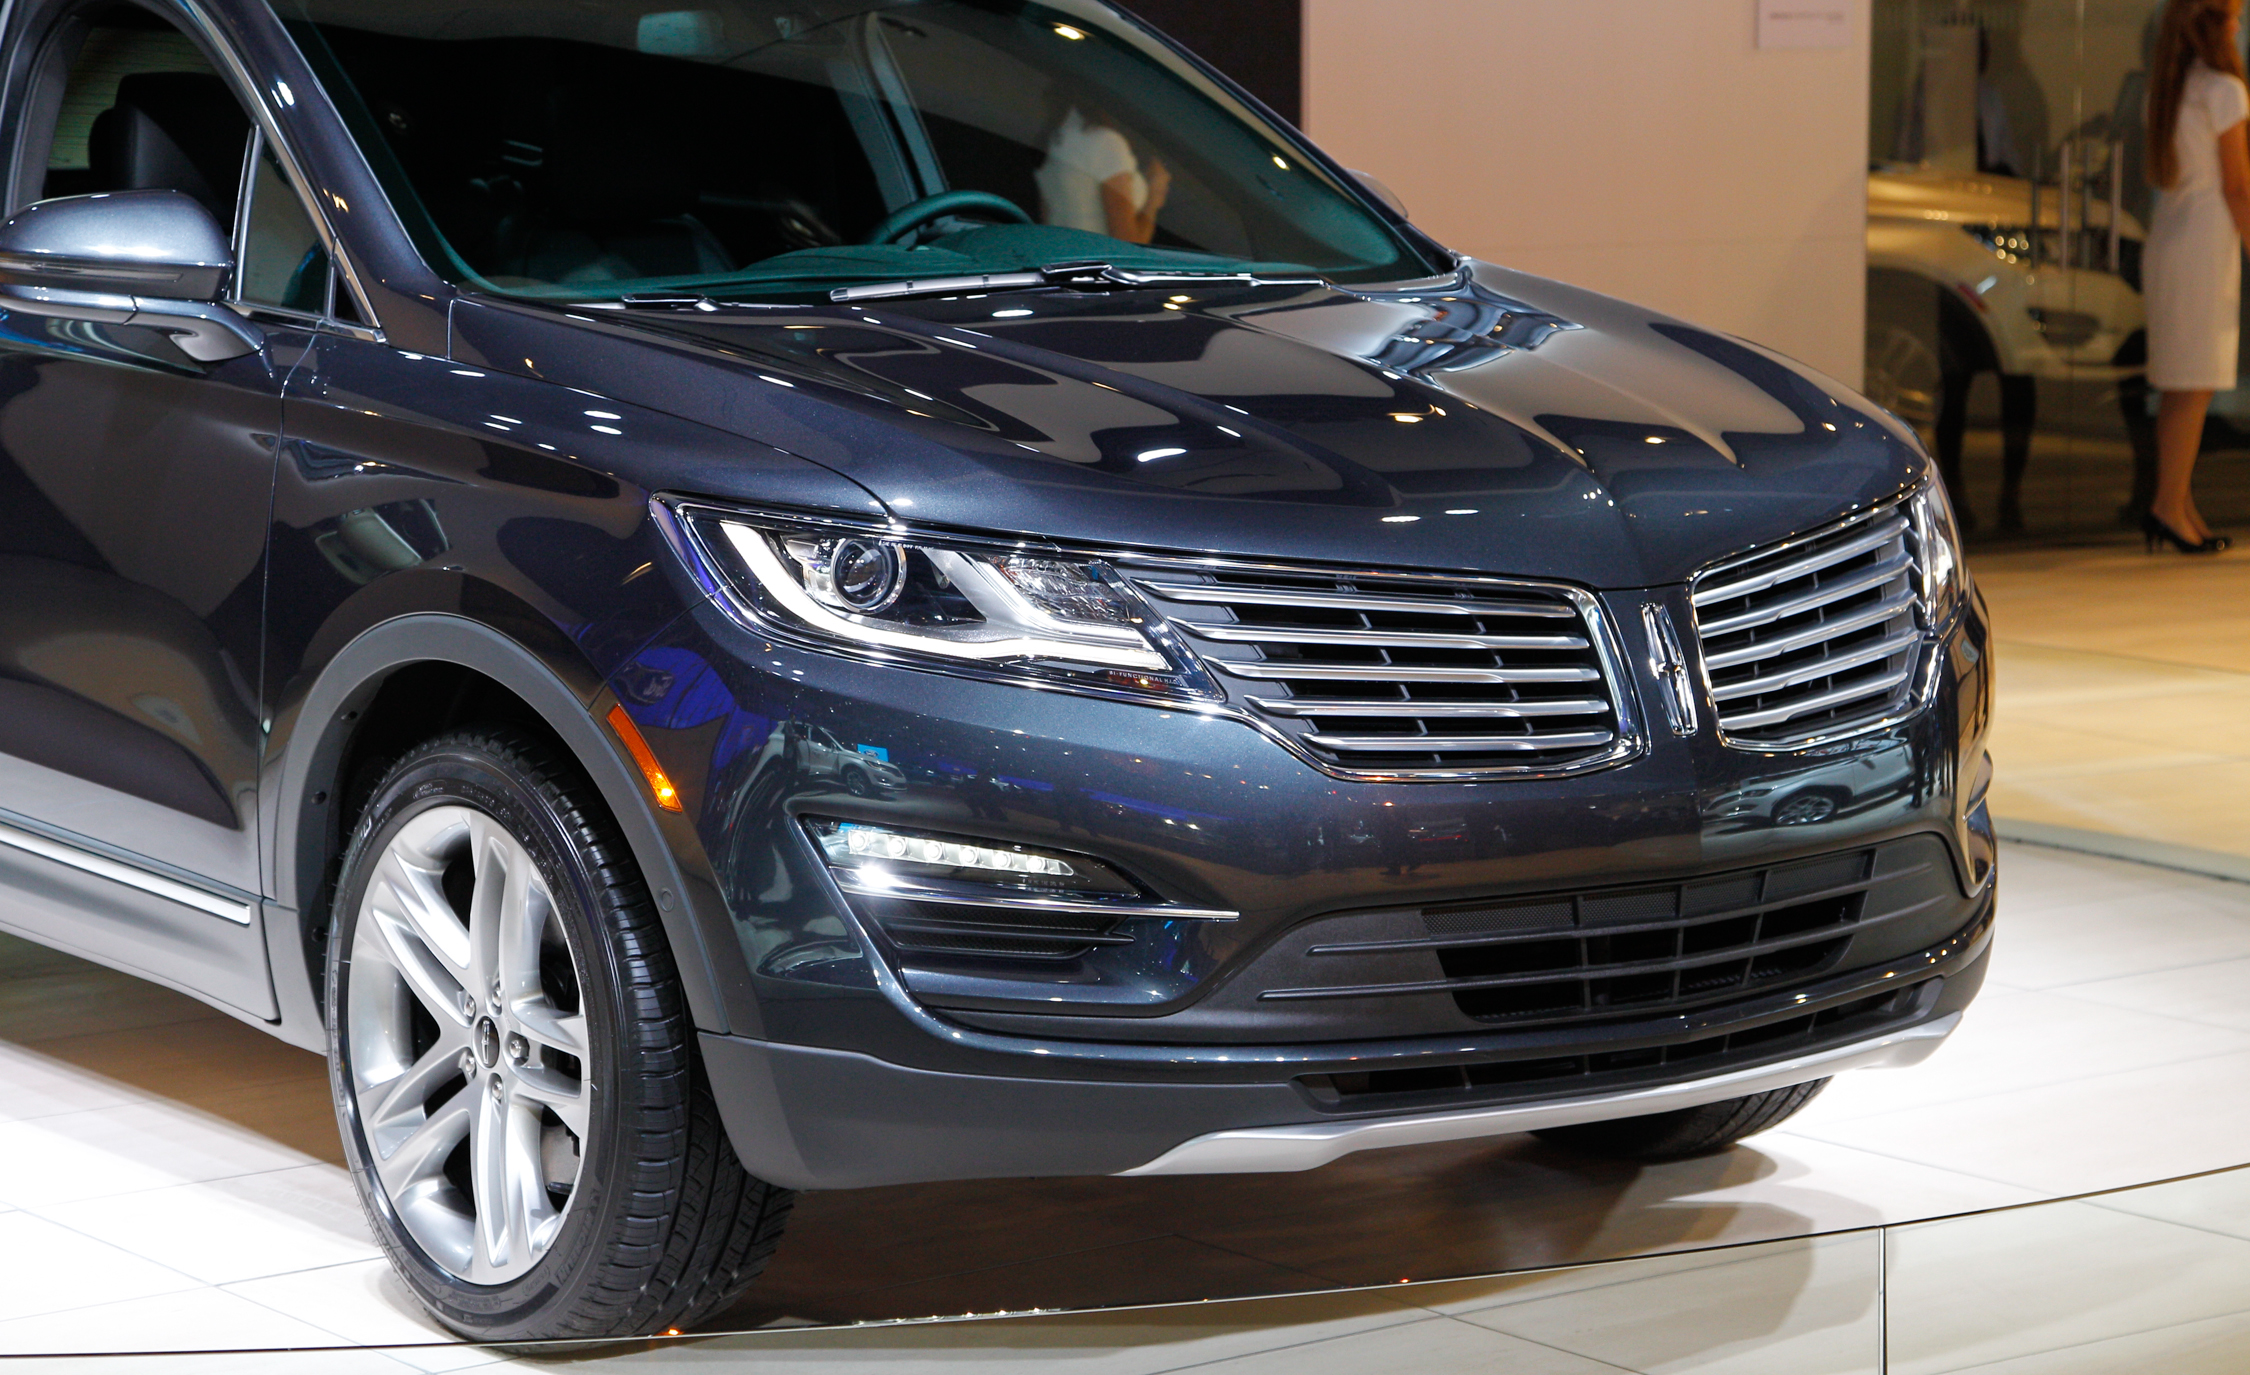 Lincoln MKC 2015 Headlamp and Grille